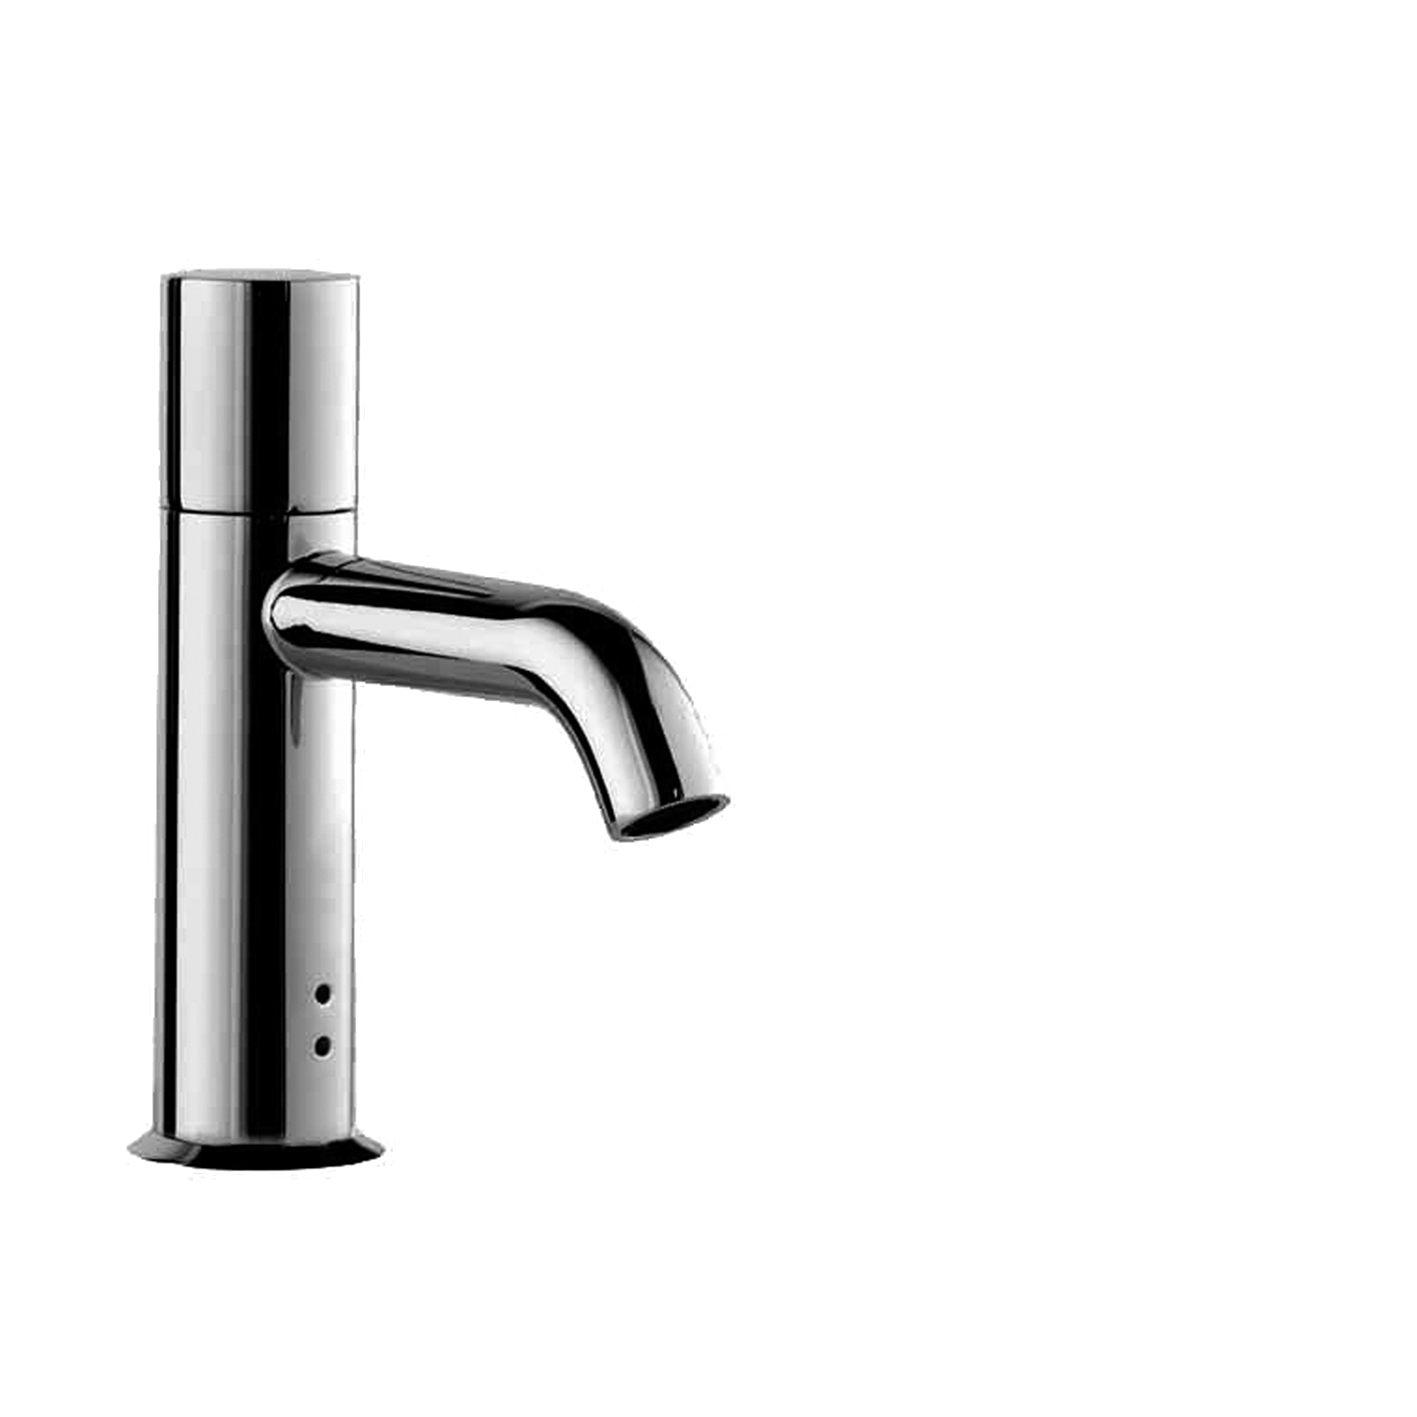 Fantini 2504WU Nostromo Single-Control Electronic Washbasin Mixer, Cylindrical Handle